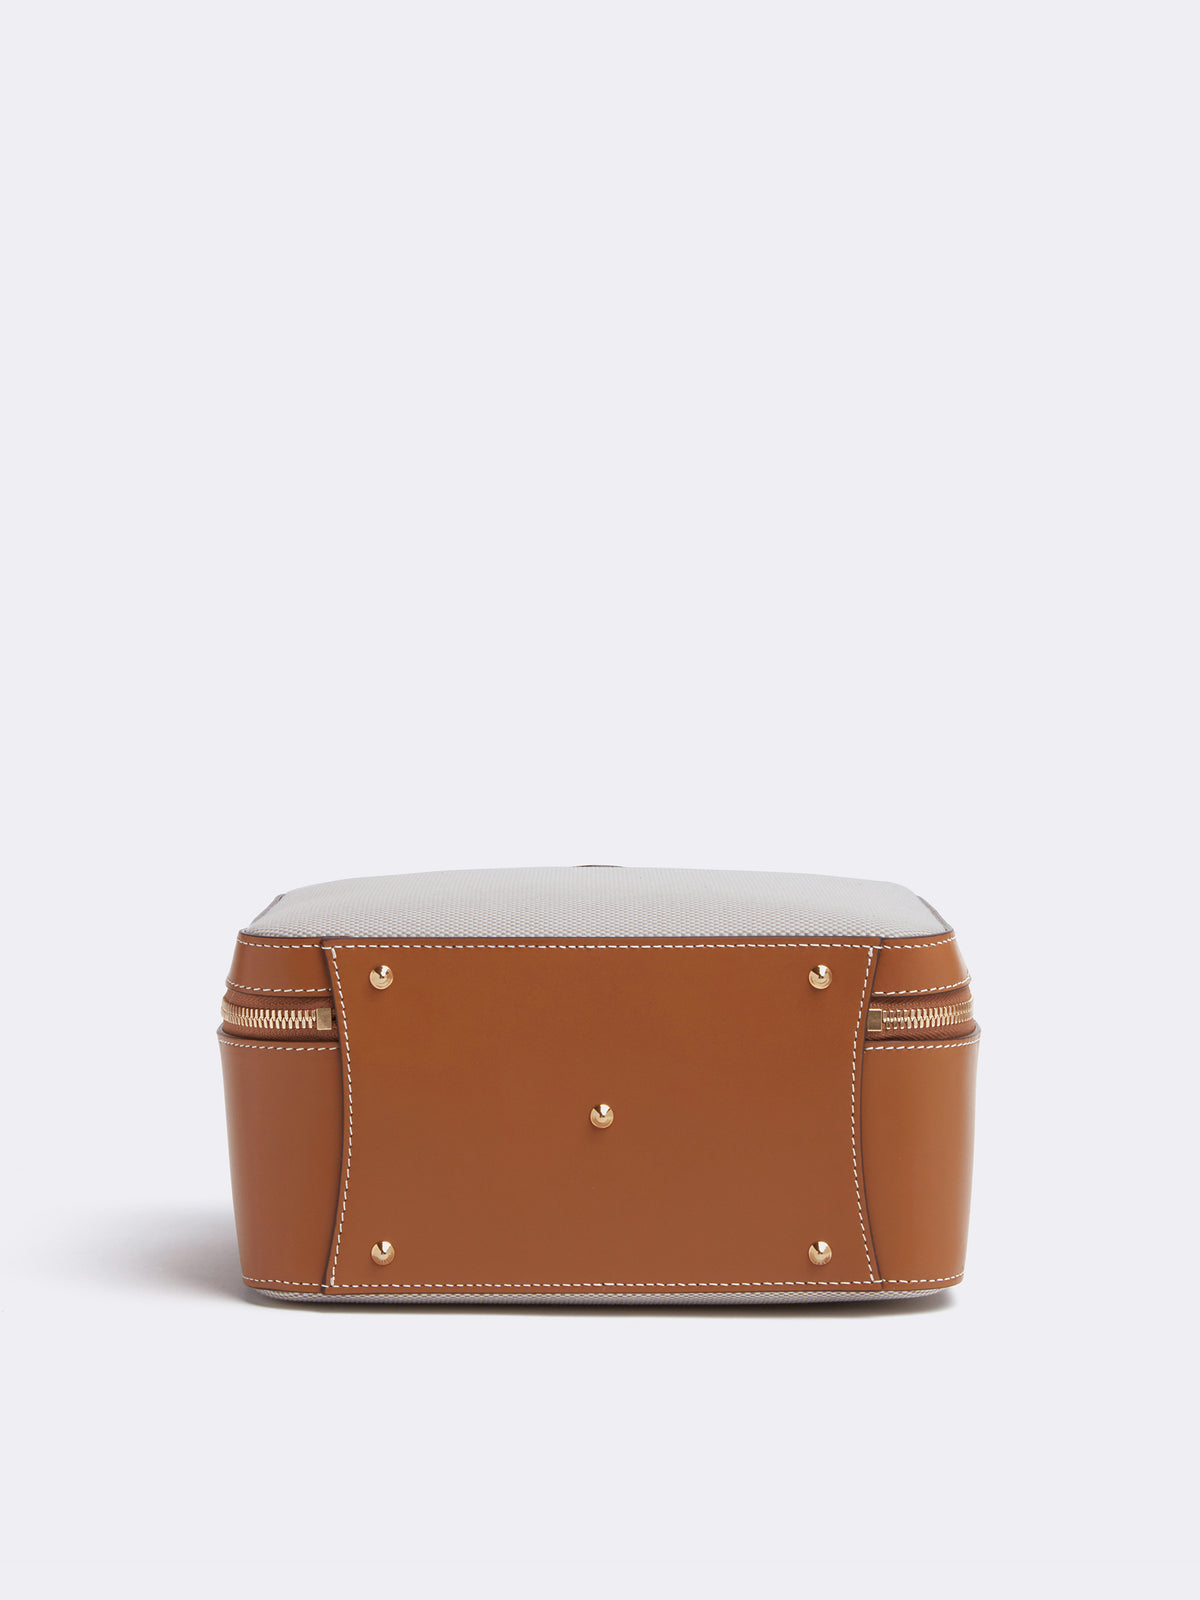 Laura Birdseye & Leather Bag